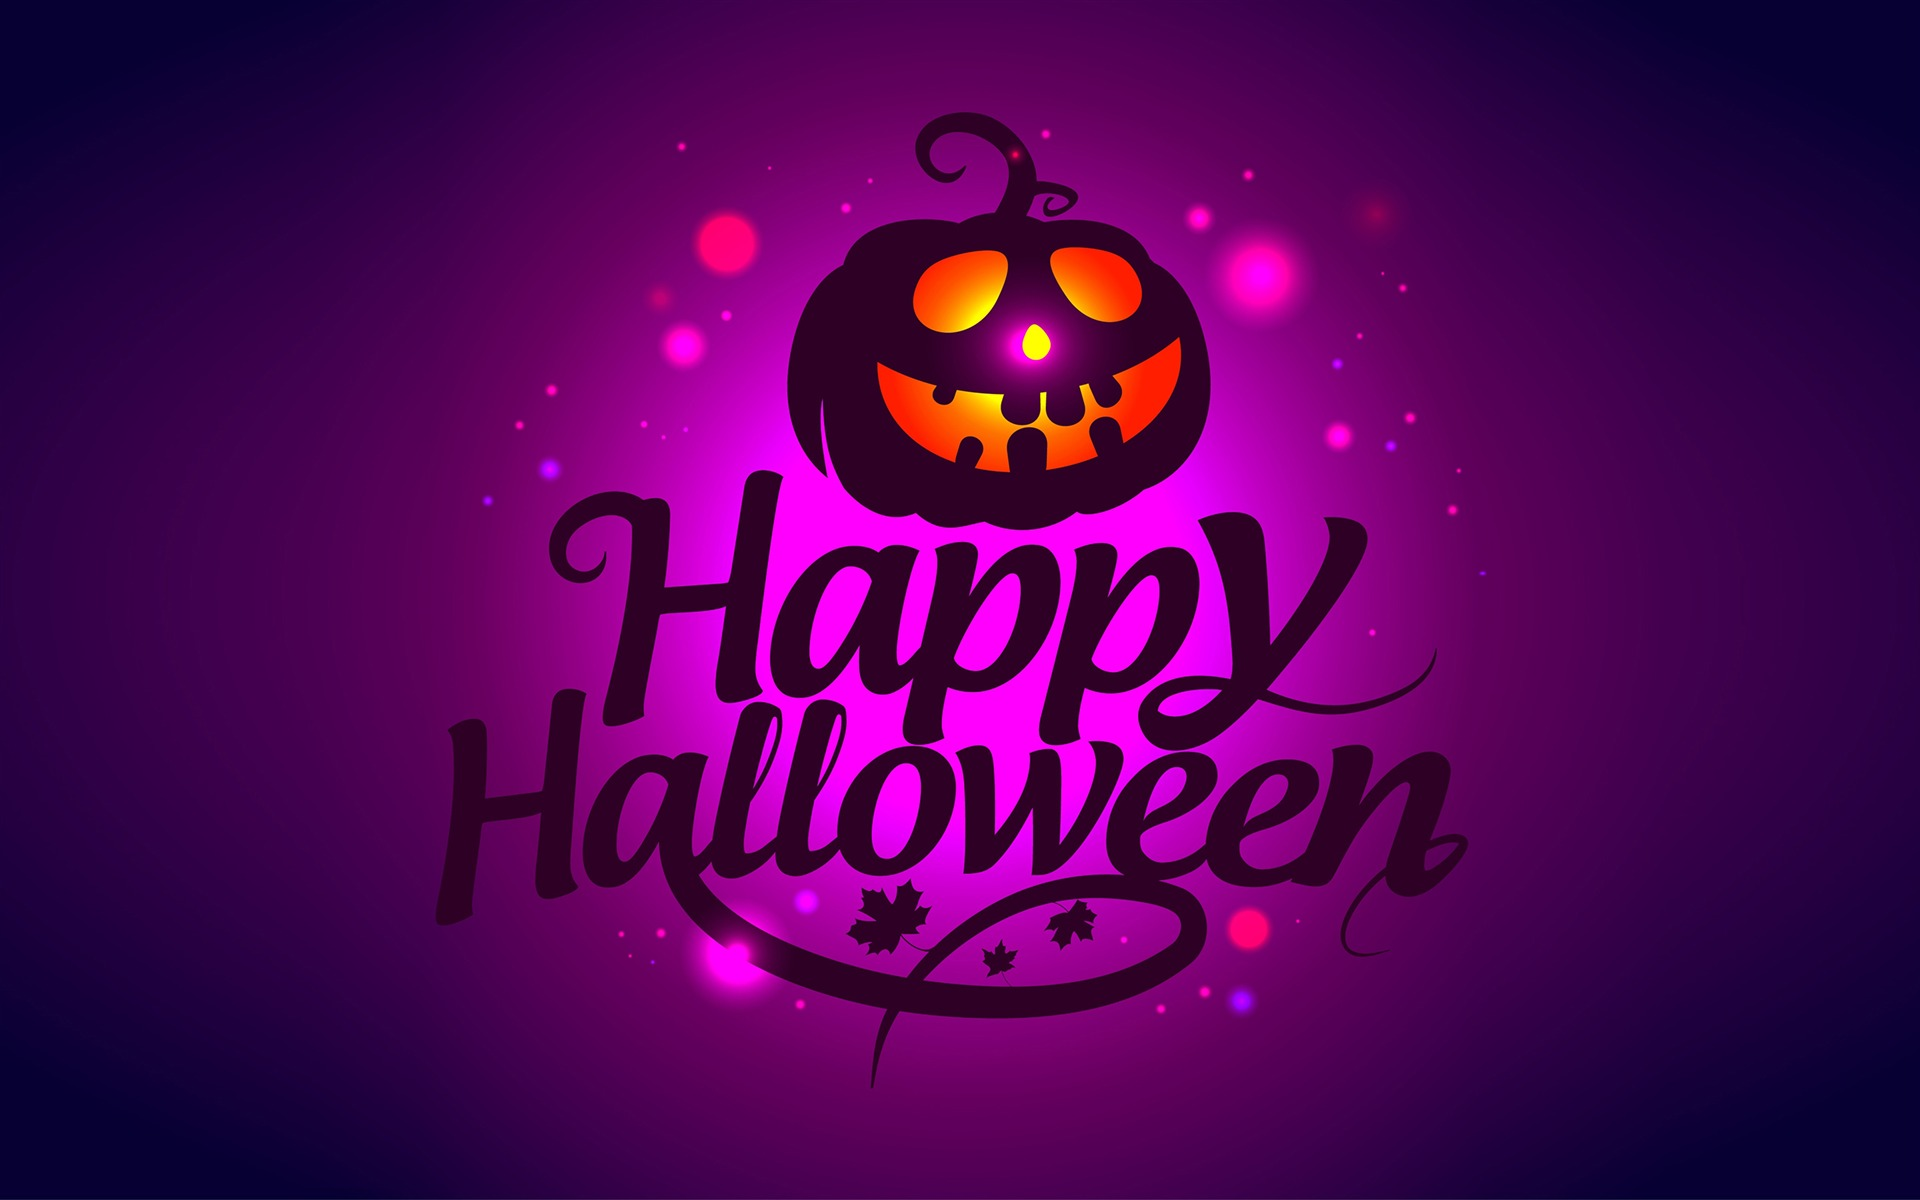 Happy Halloween Celebration Wallpaper 1920x1200